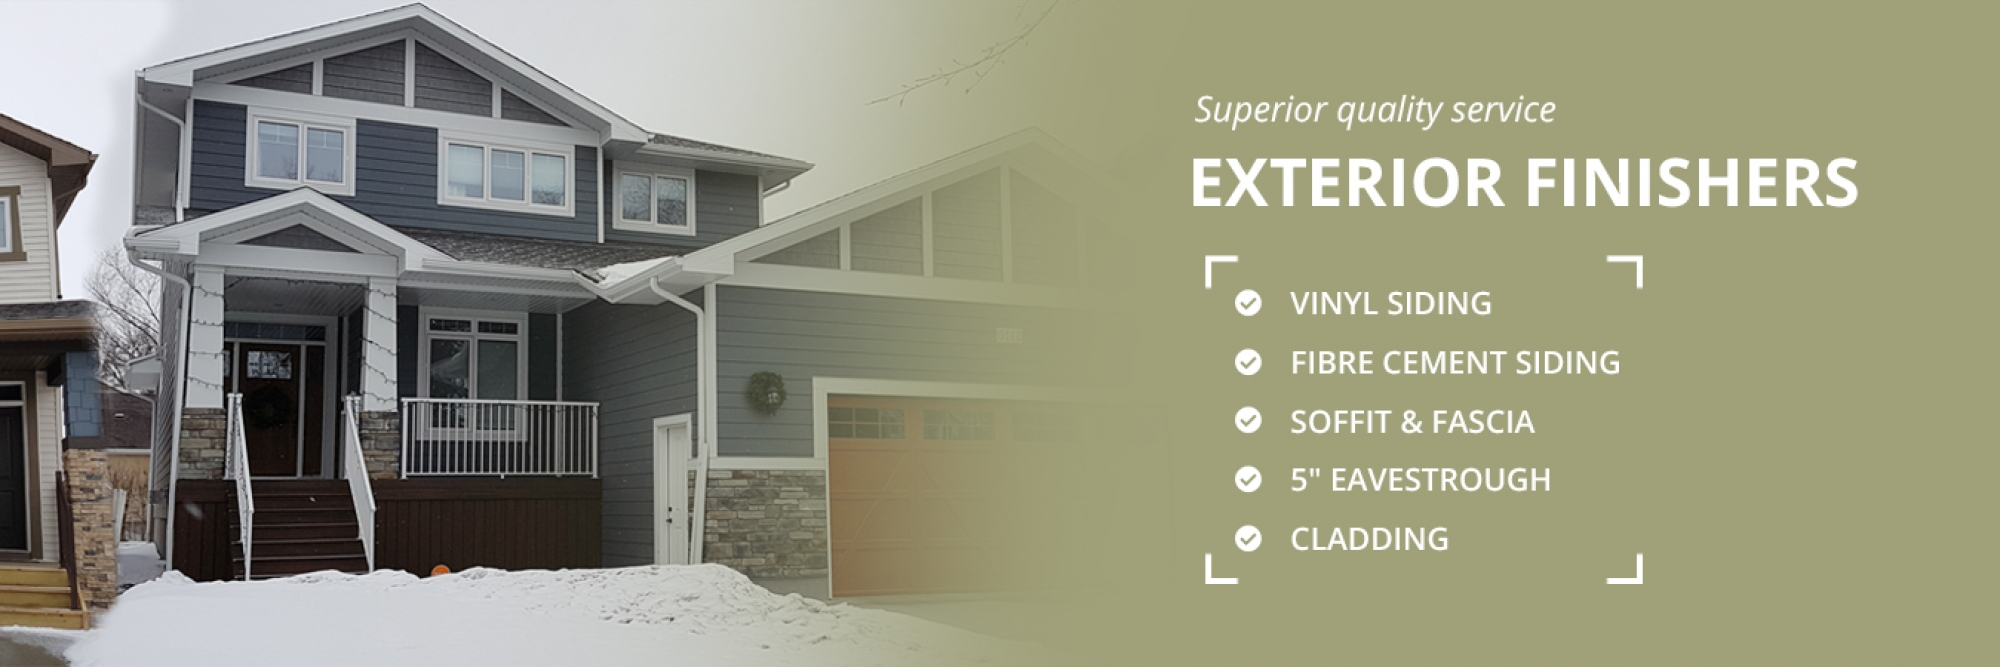 Exterior Finishers Direct